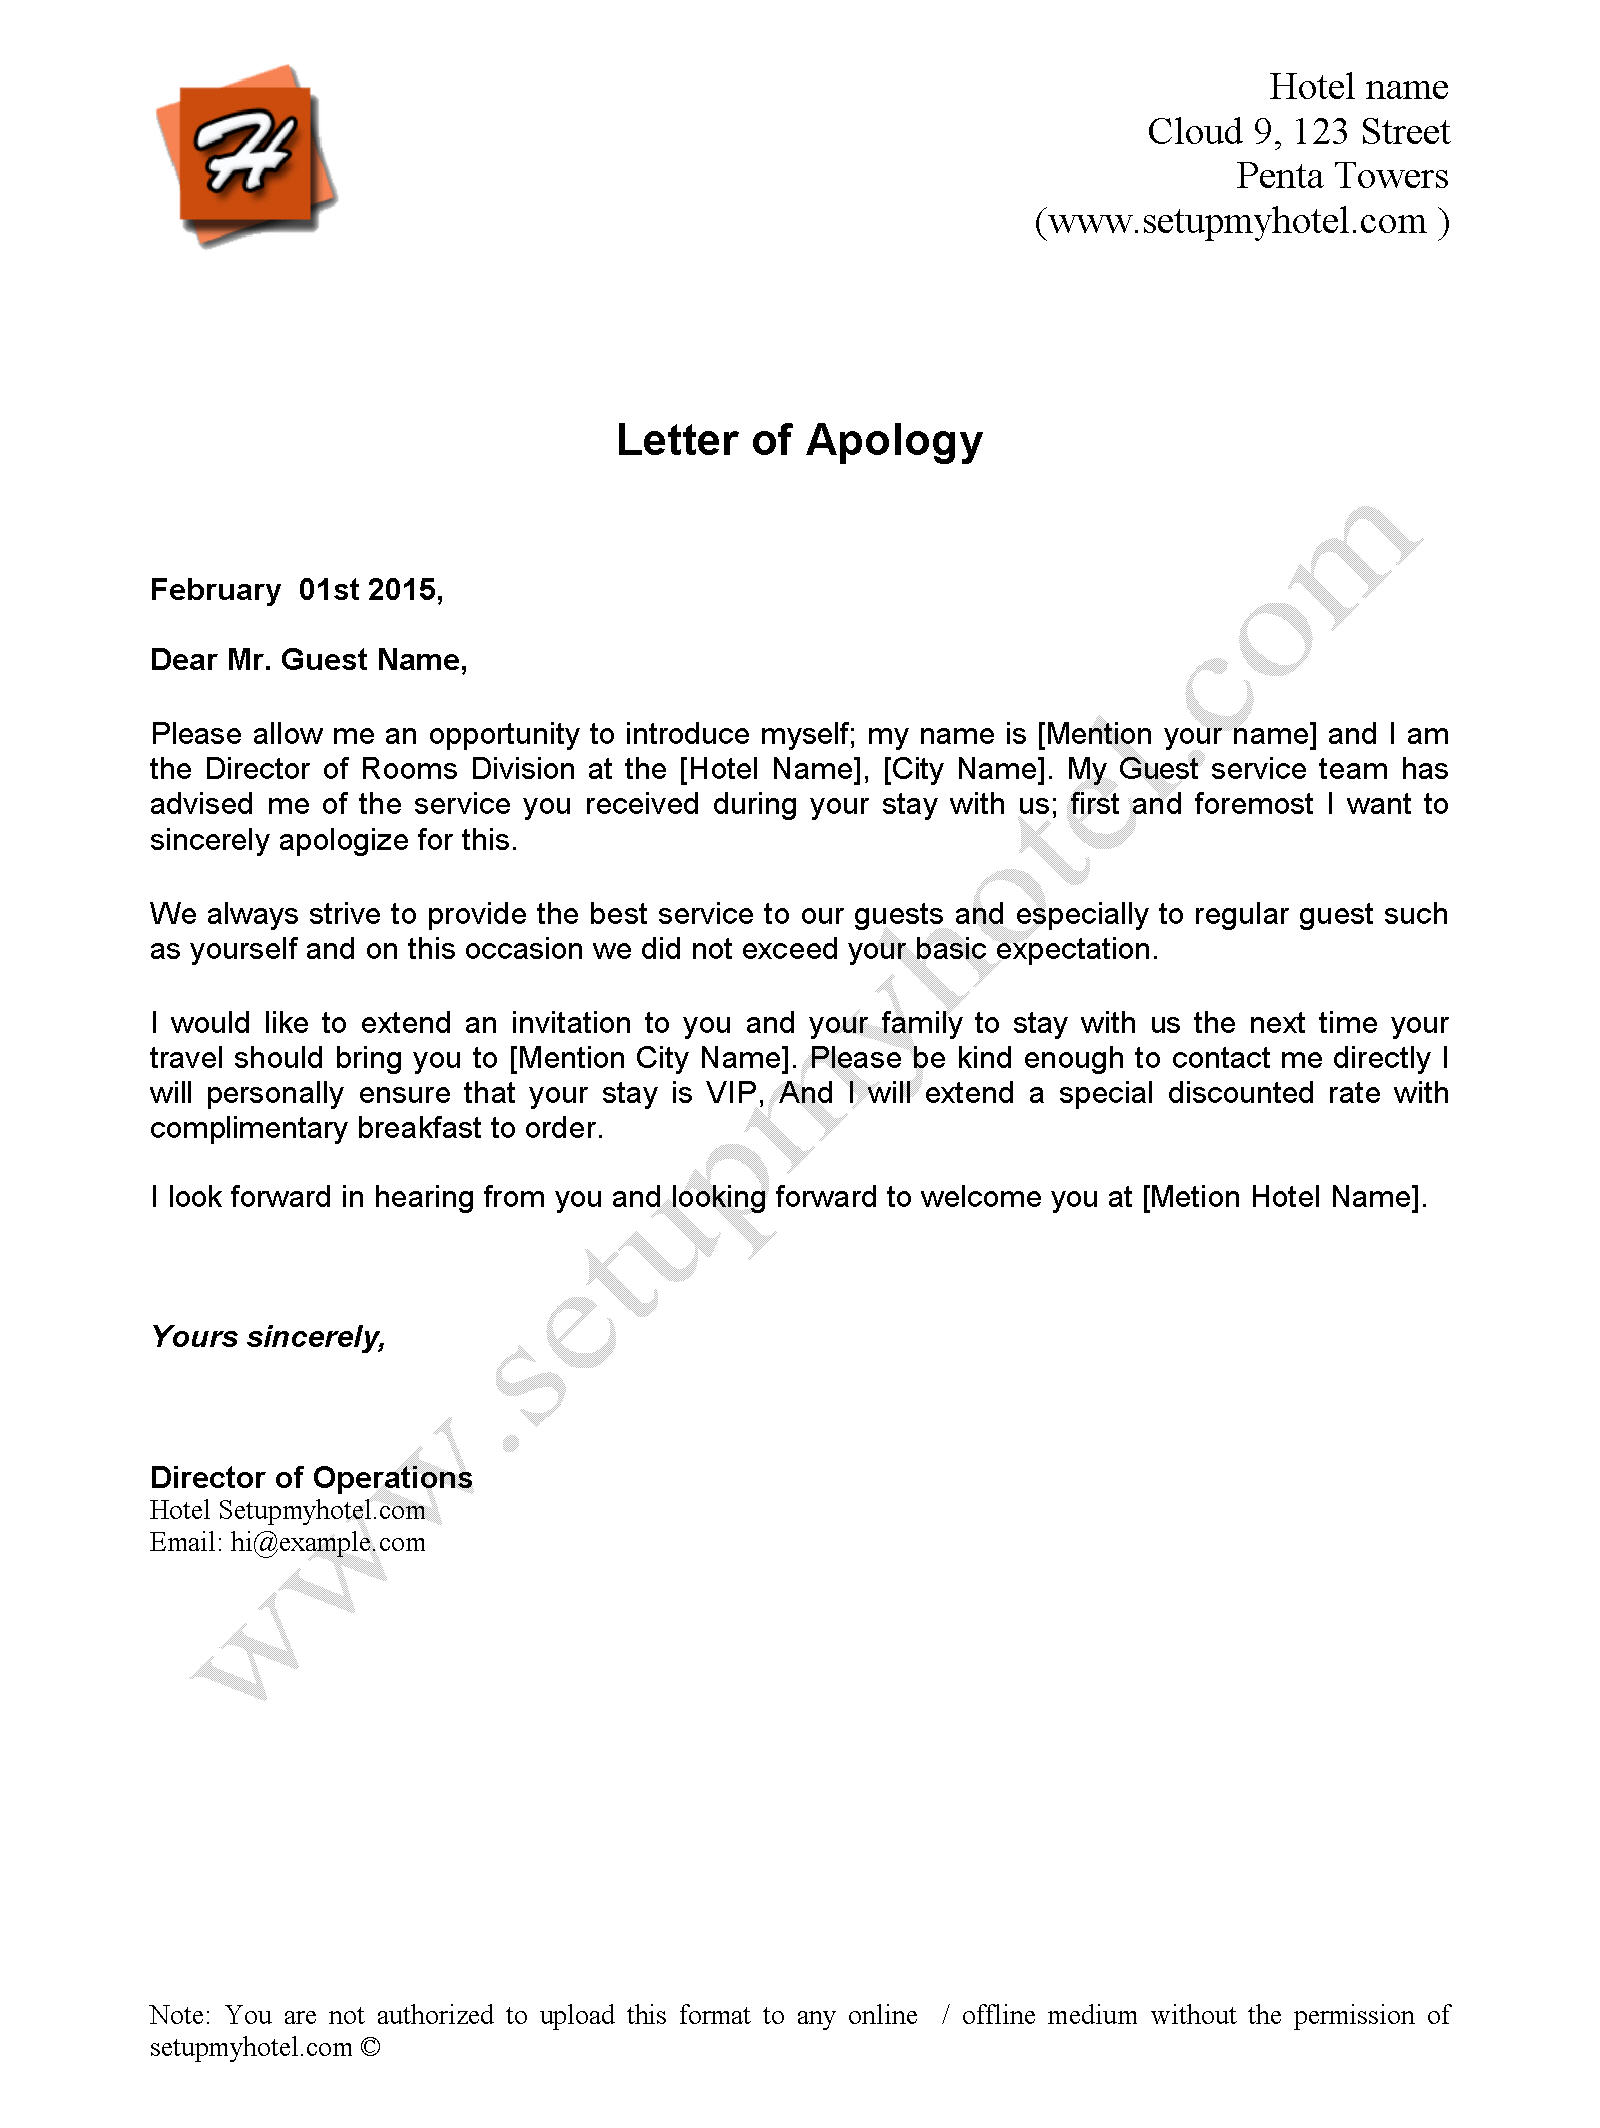 Apology Letter Sample Send to Hotel Guests